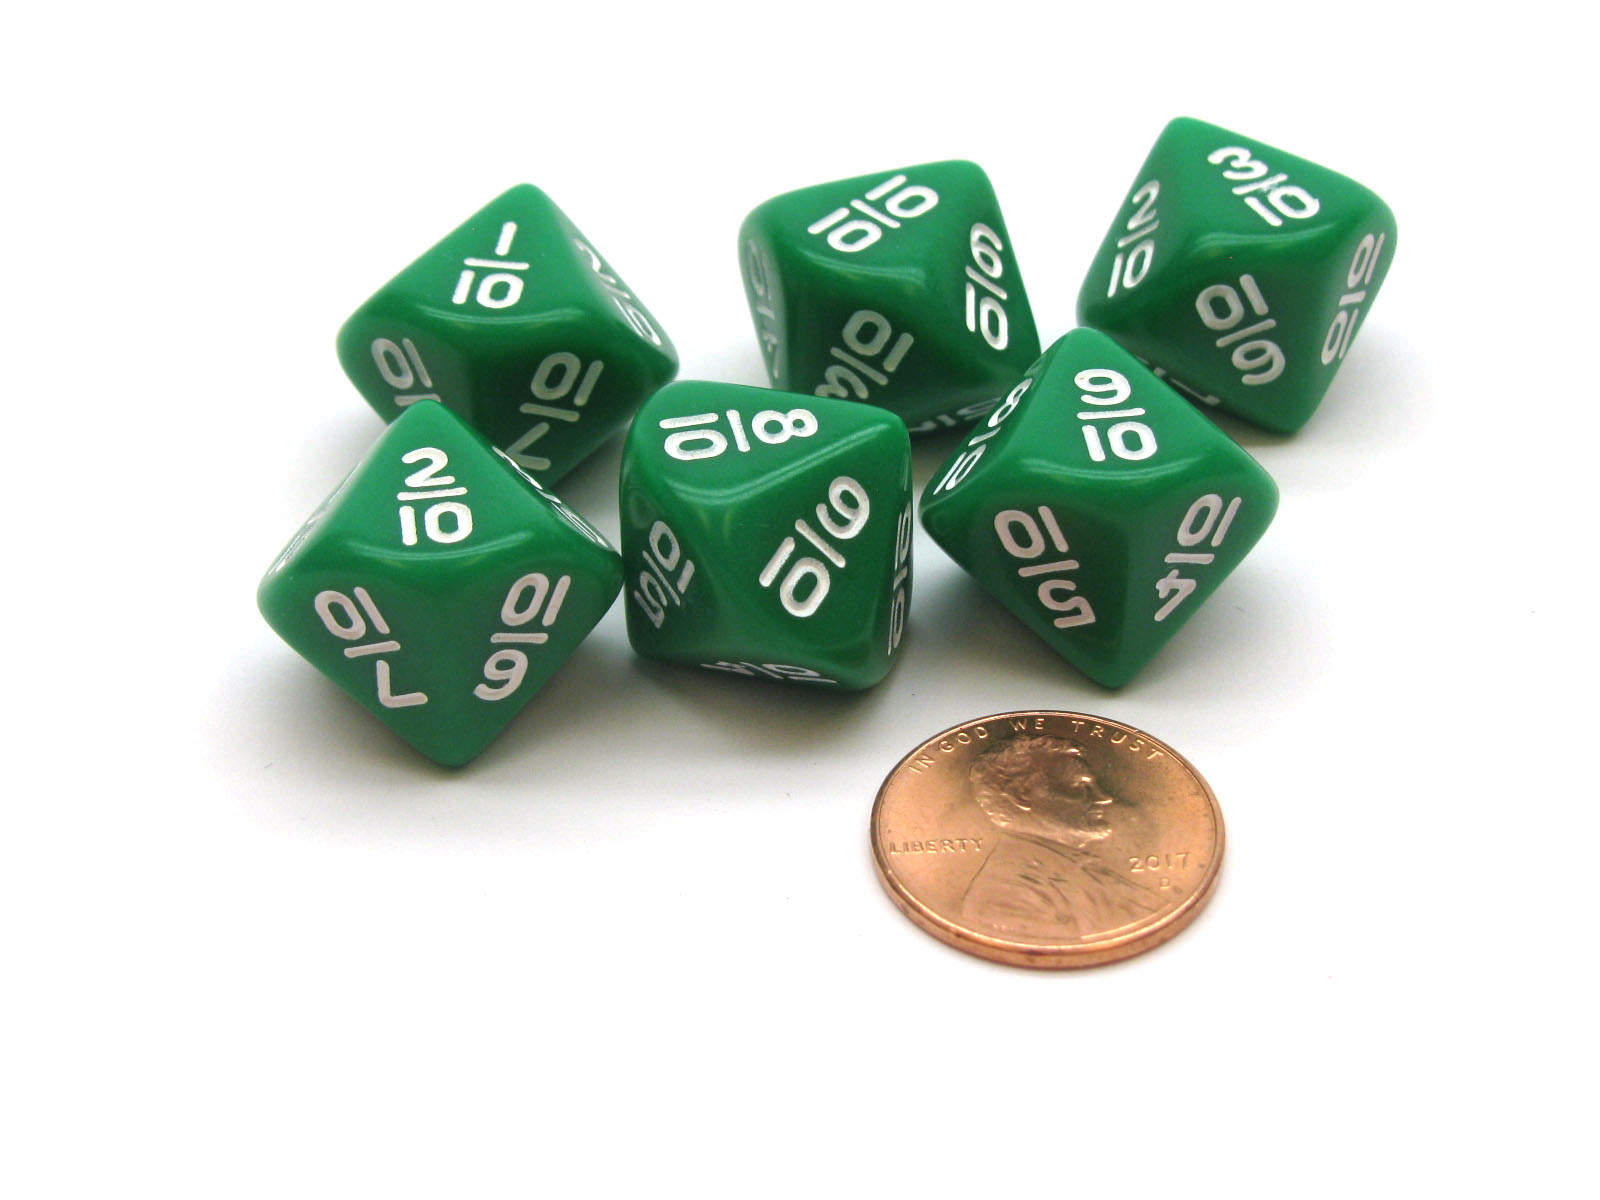 1//10 to 10//10 Green with White Numbers Pack of 6 10 Sided Fraction Math Dice